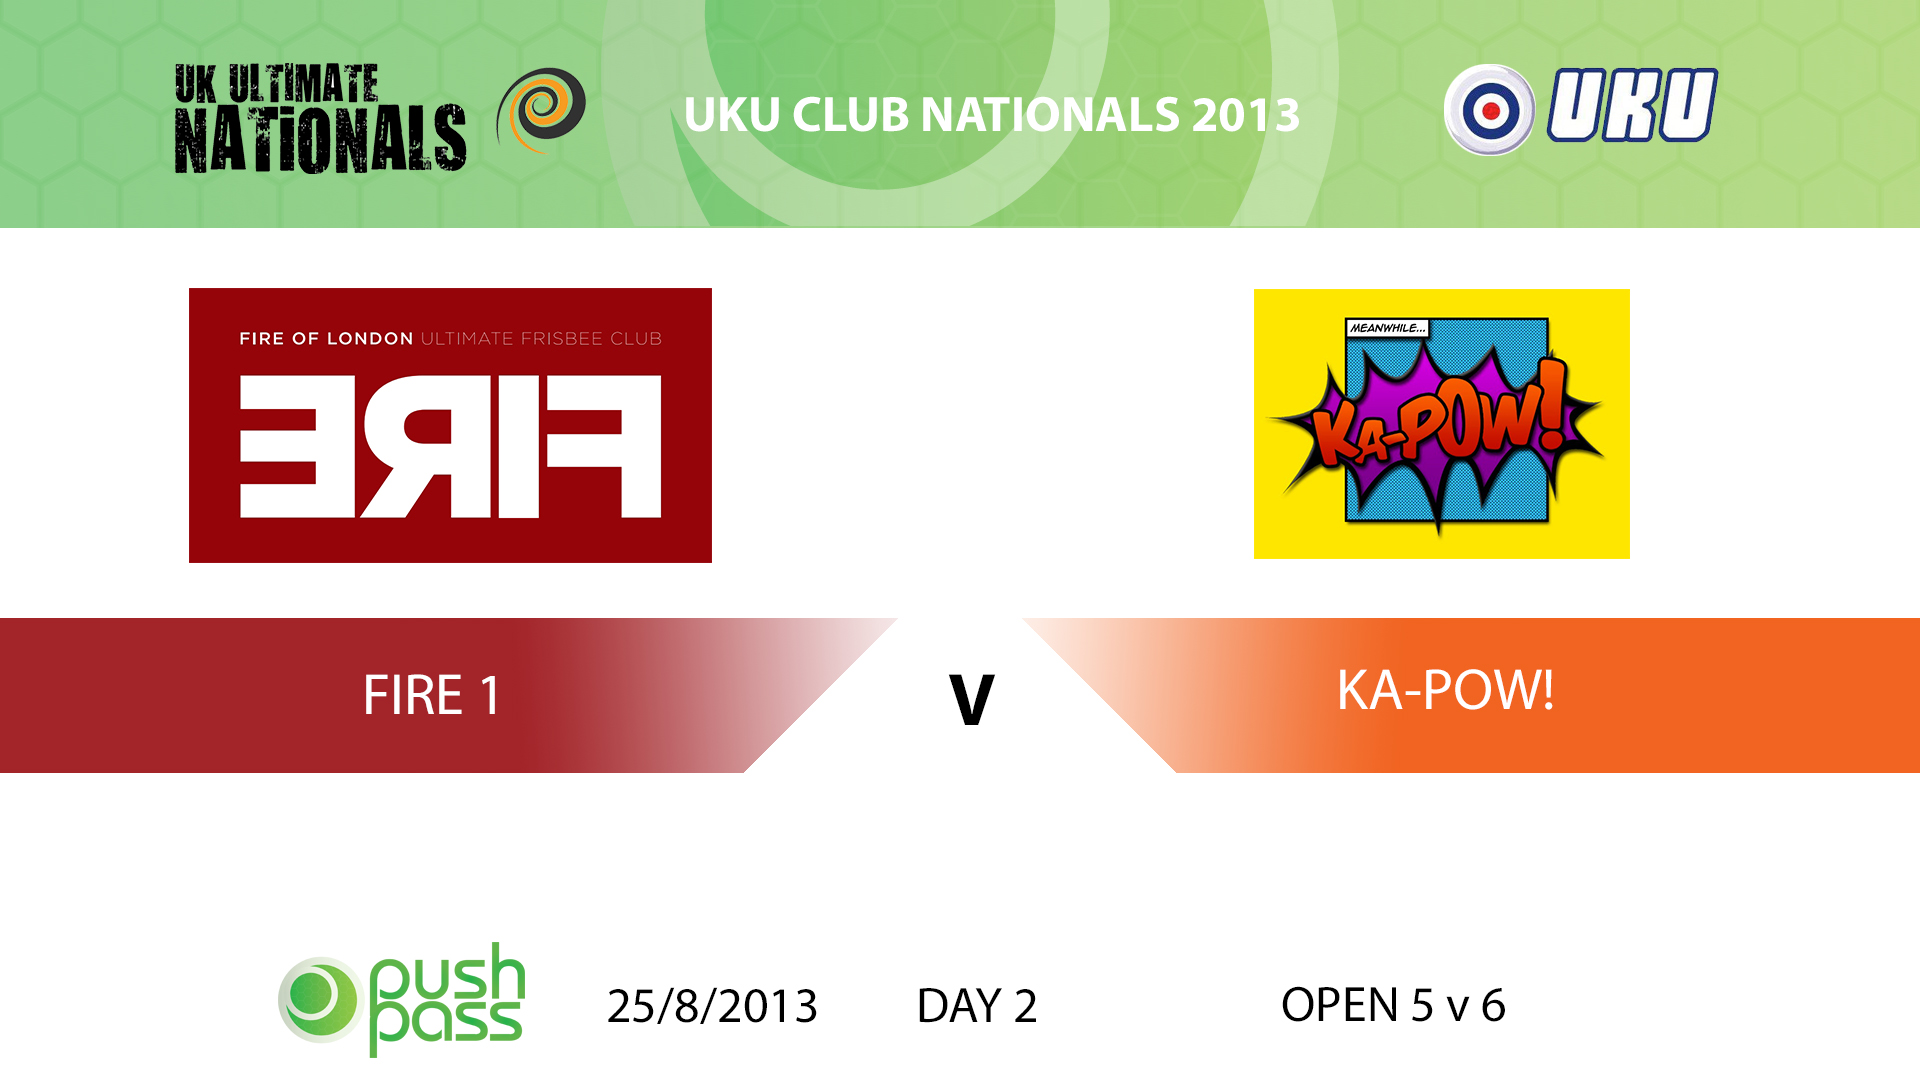 UKU Club Nationals 2013: Fire 1 v Ka-Pow!